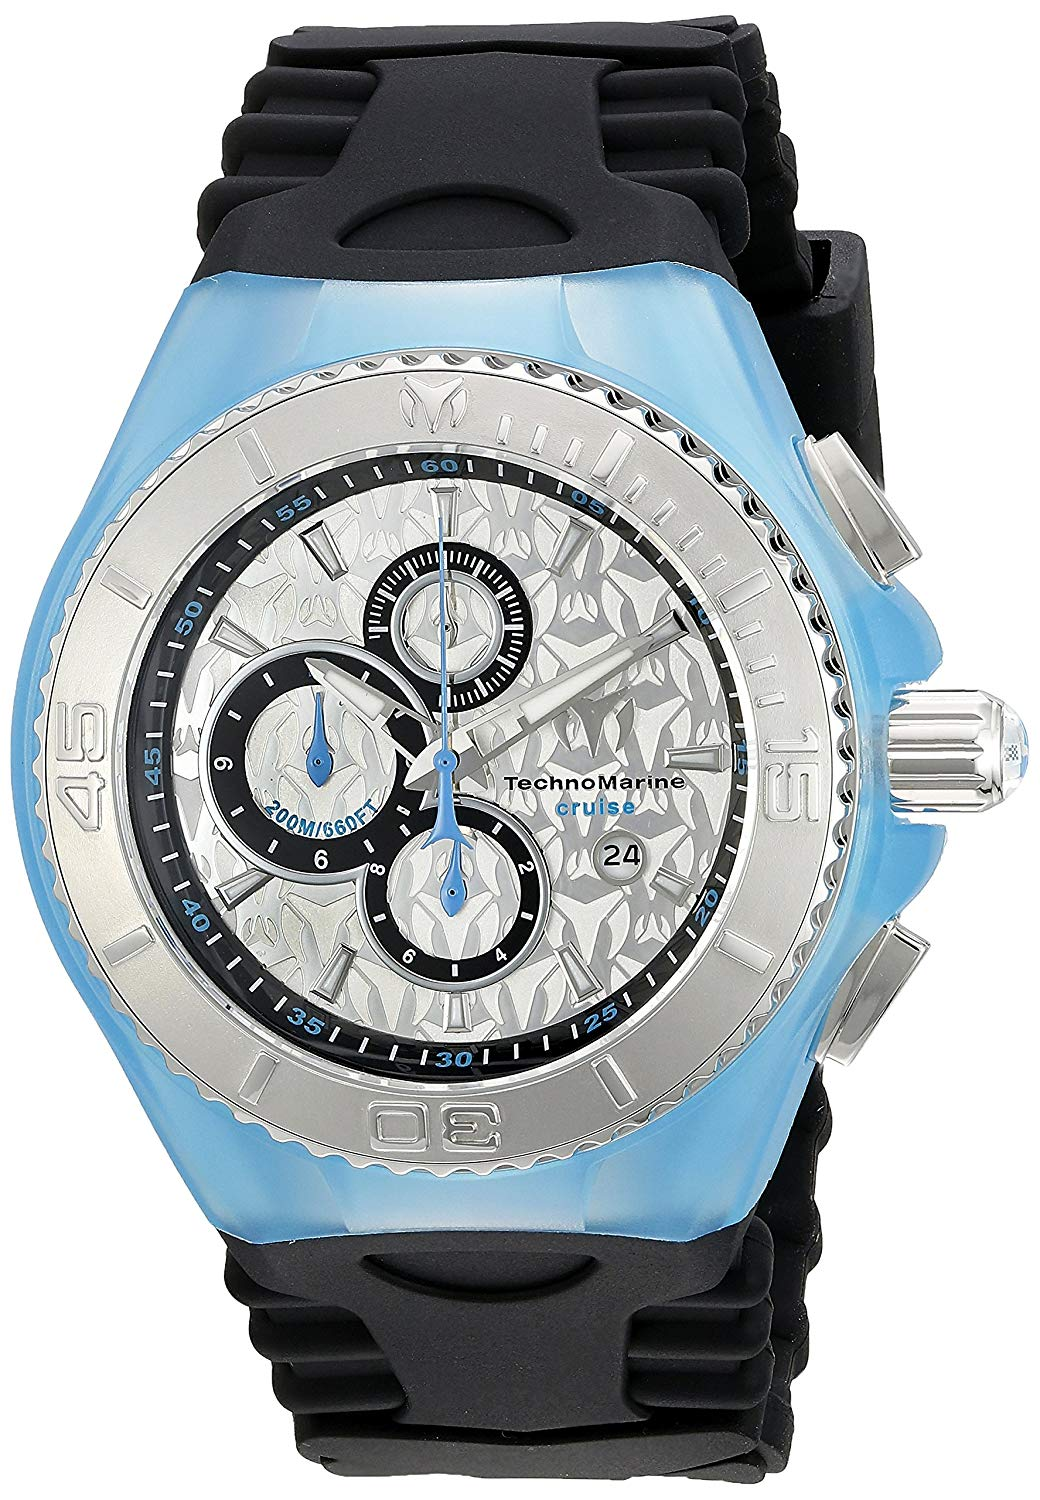 Technomarine Men's TM-115192 Cruise Jellyfish Analog Display Quartz Black Watch